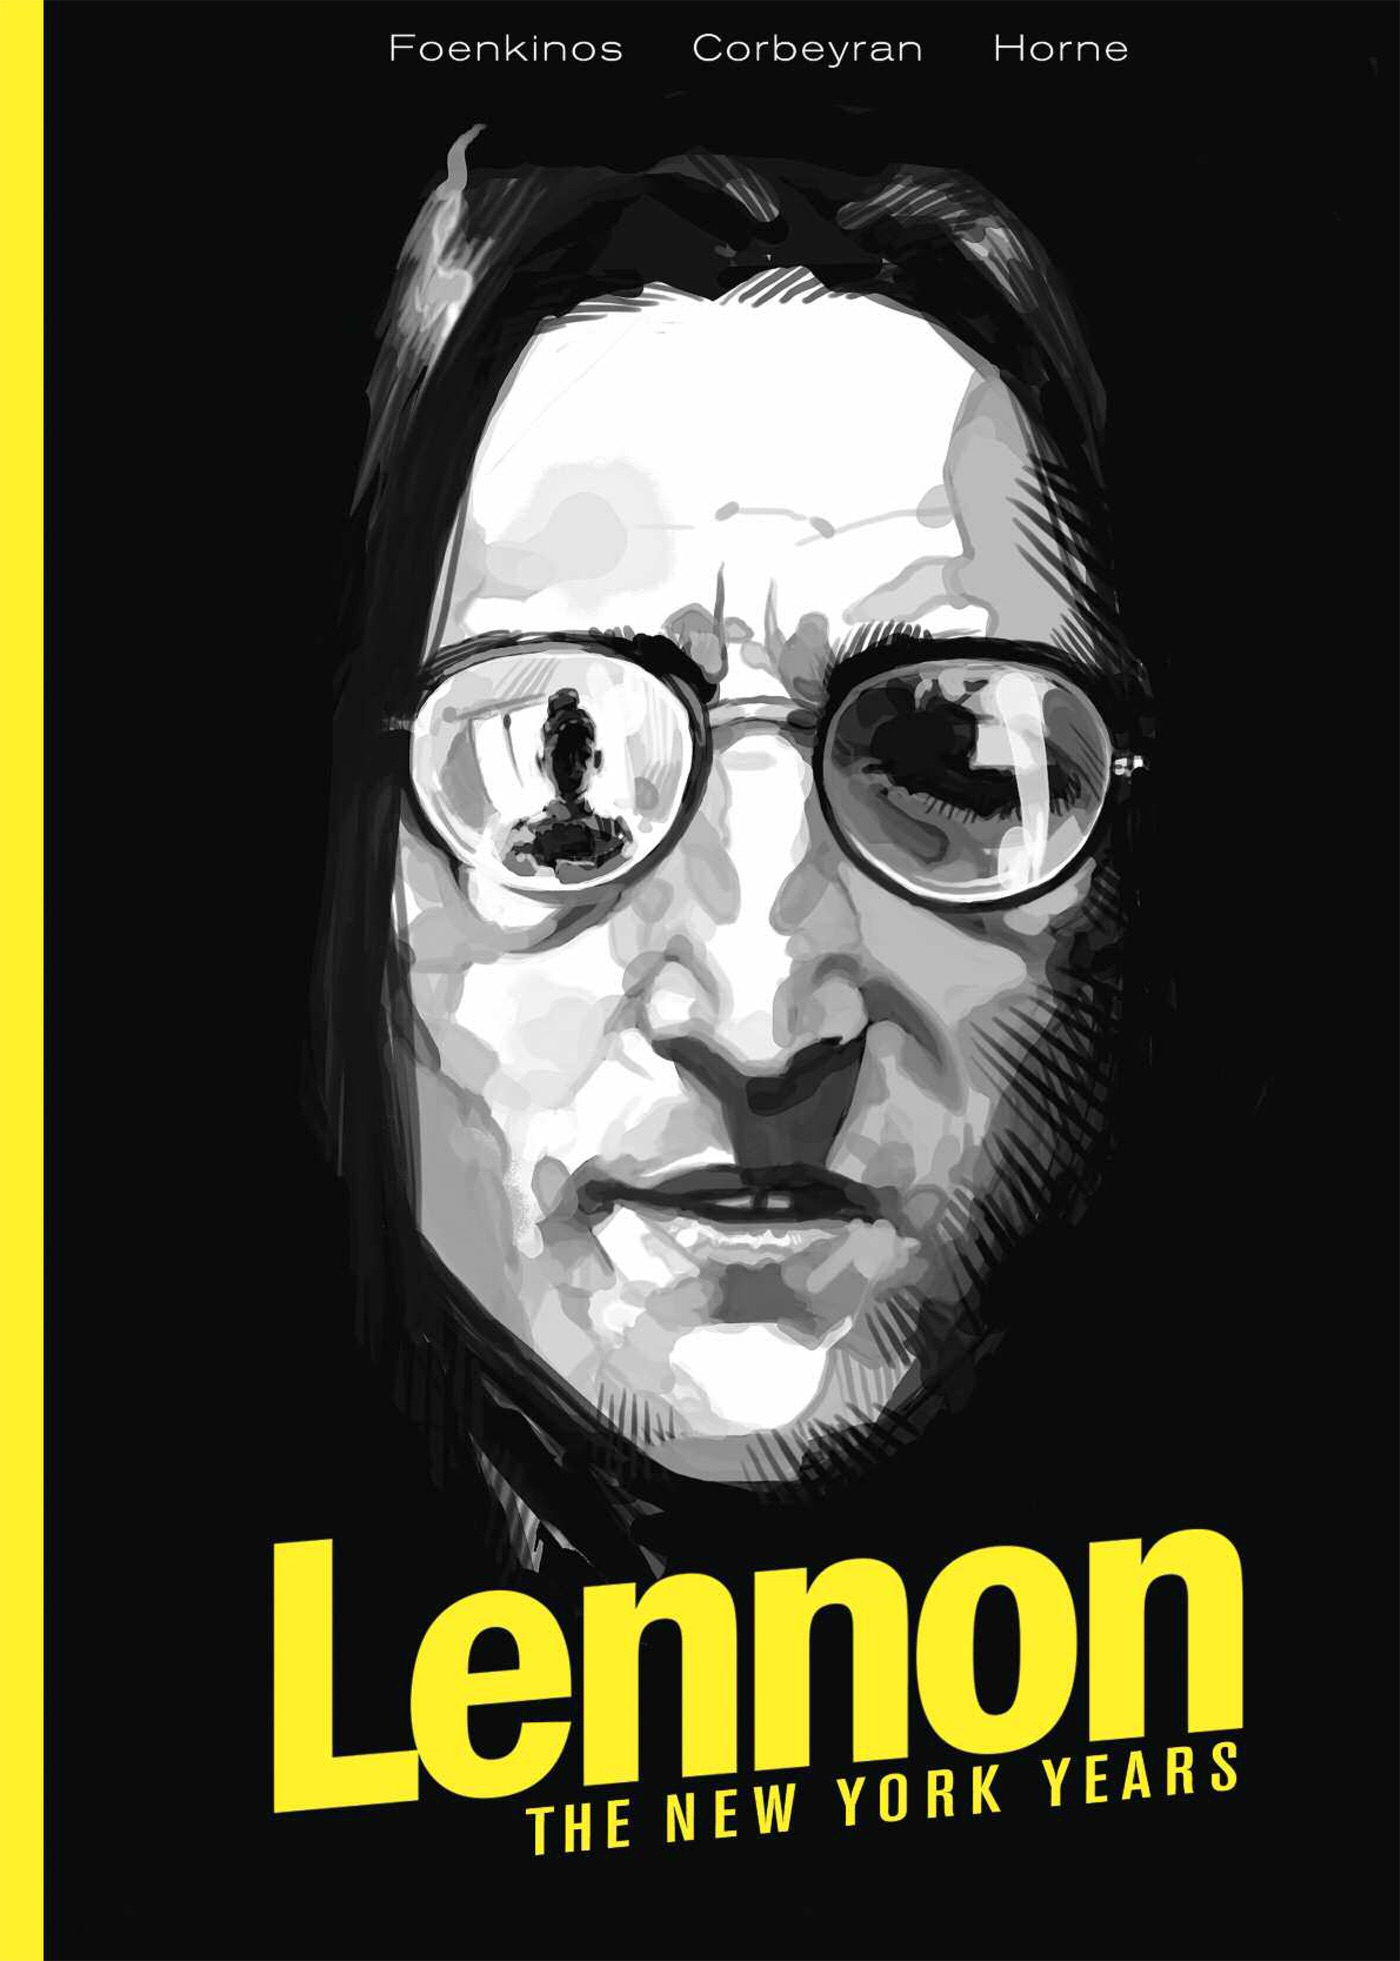 lennon hc cvr prh Graphic novel recounting John Lennons New York years previewed in new trailer    watch